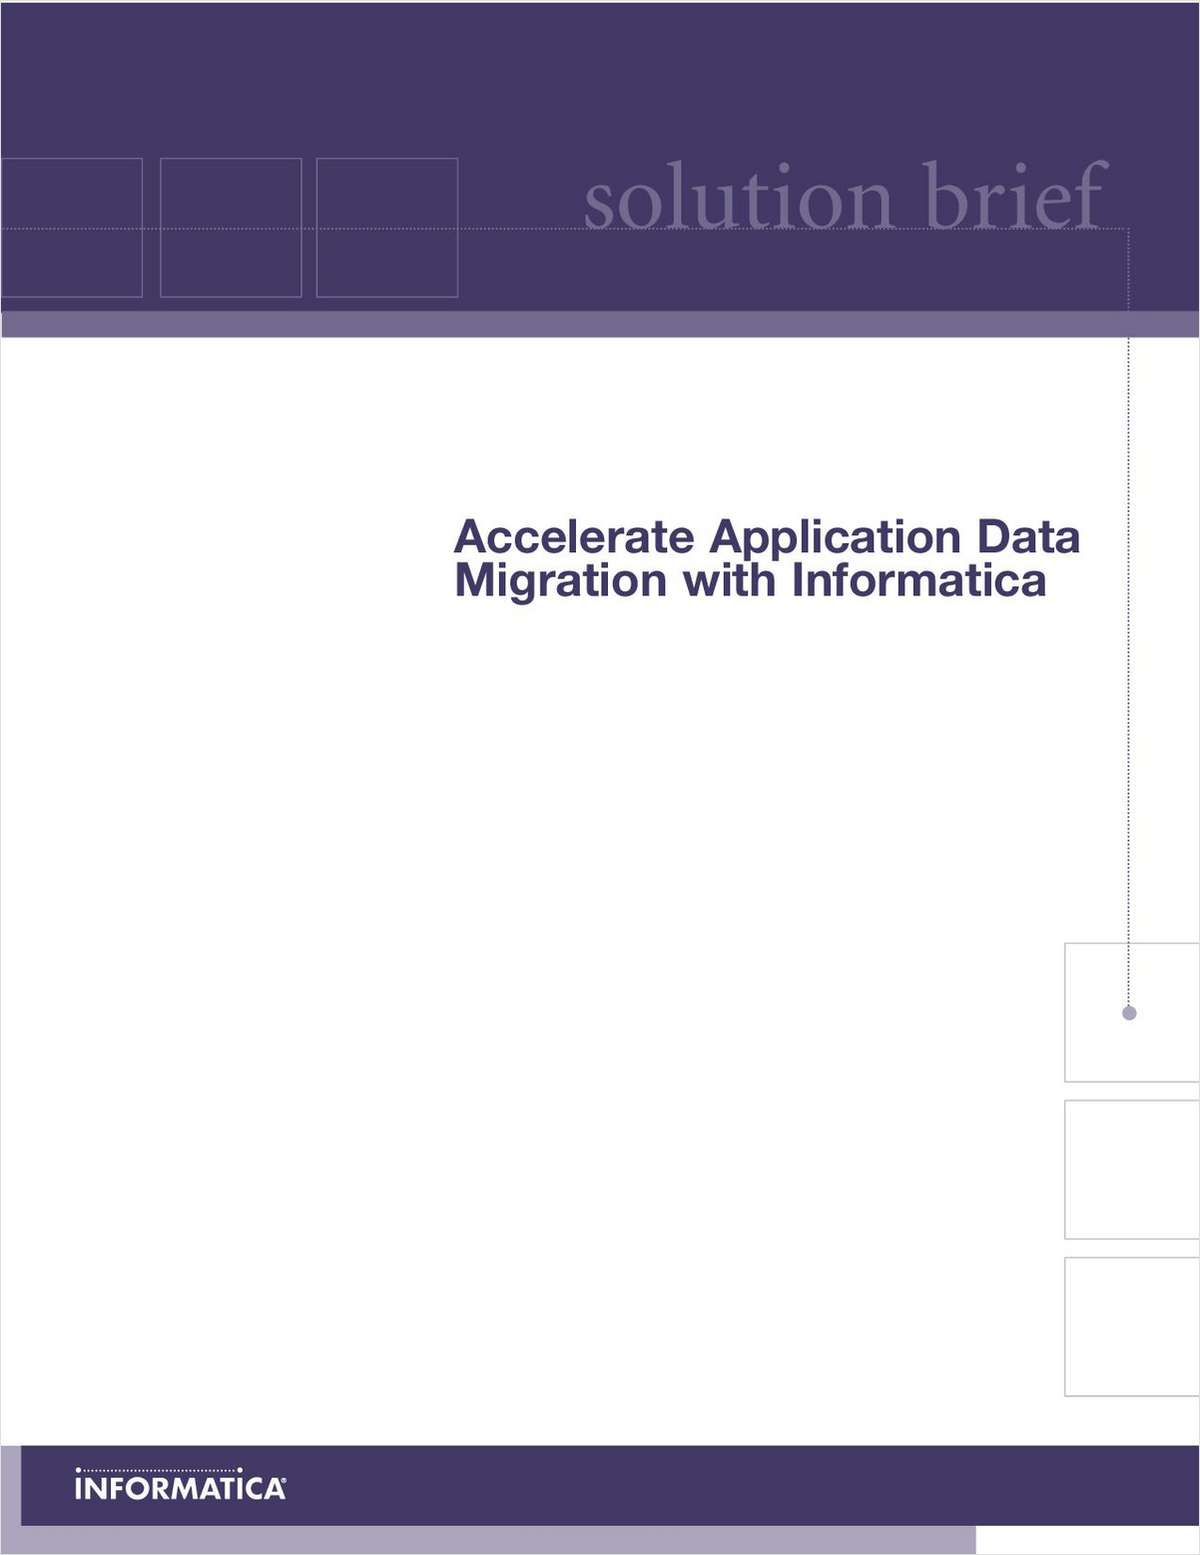 Data Migration Solution Brief